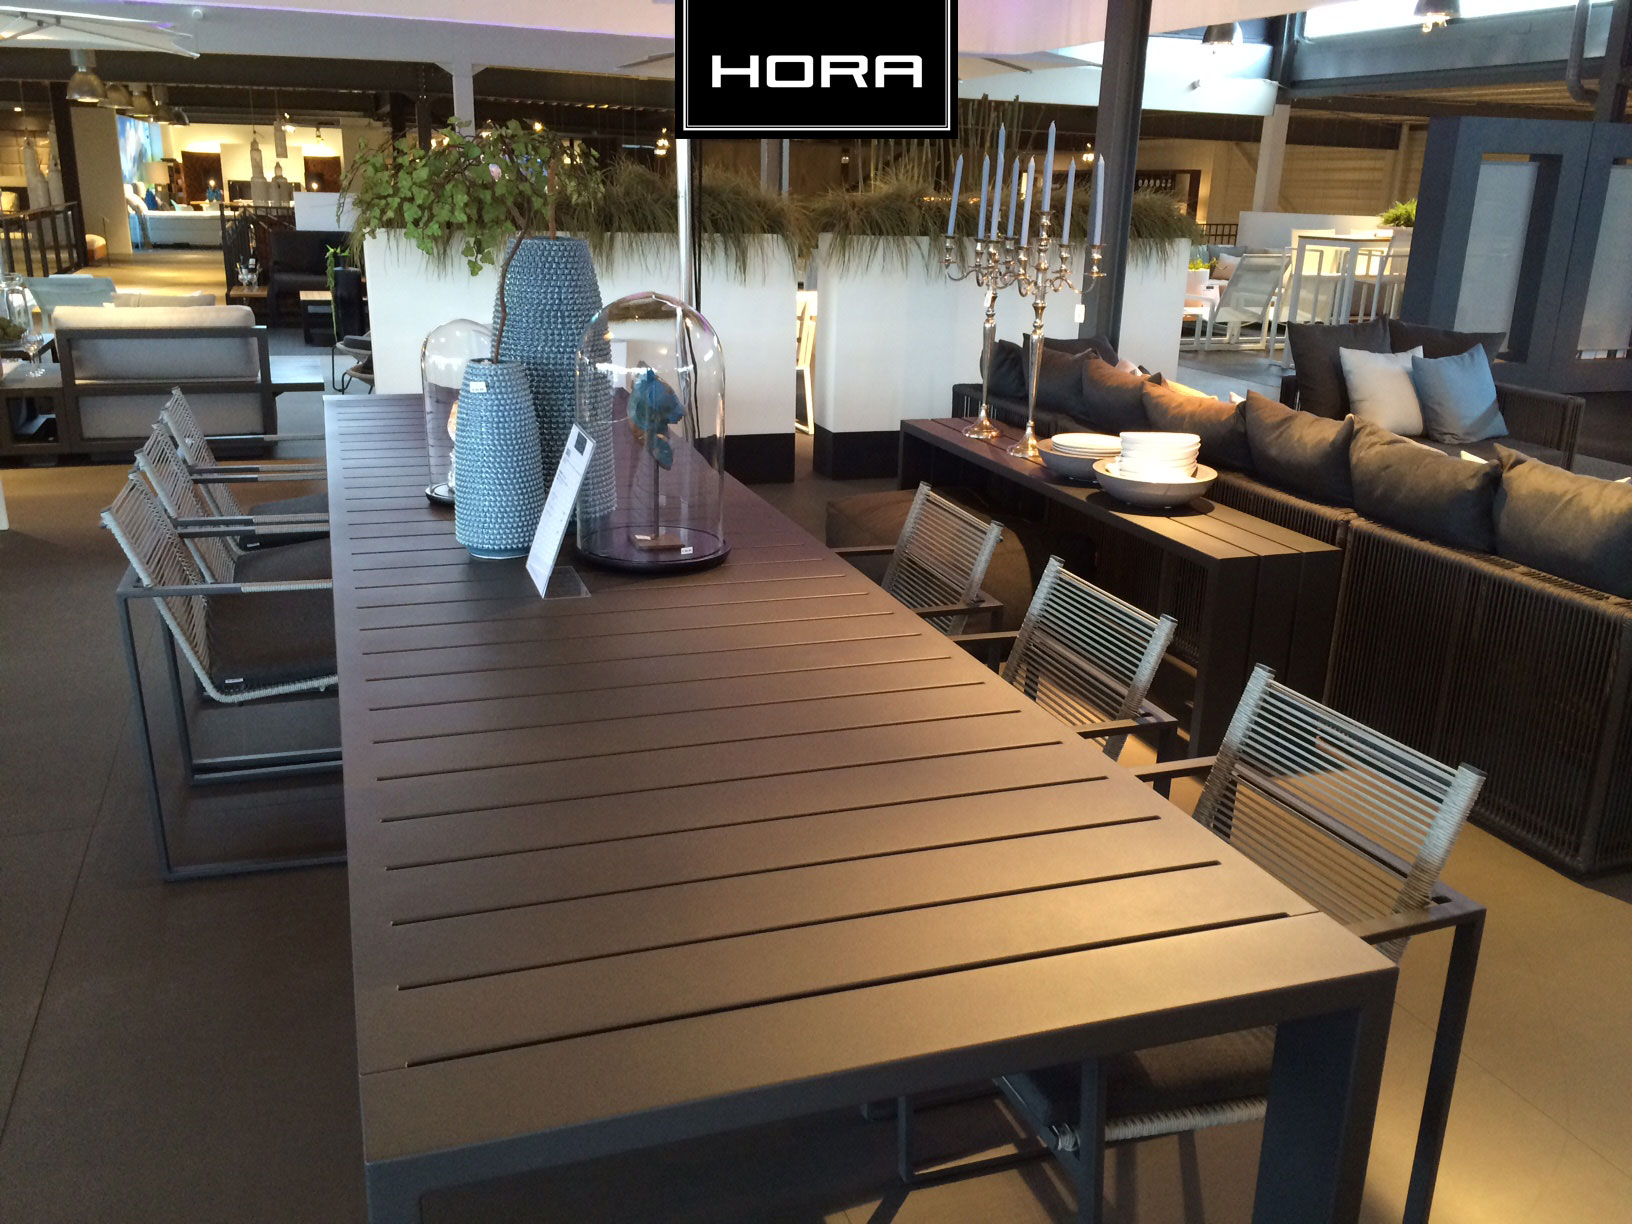 The borek showroom at hora welcome at the most beautifull